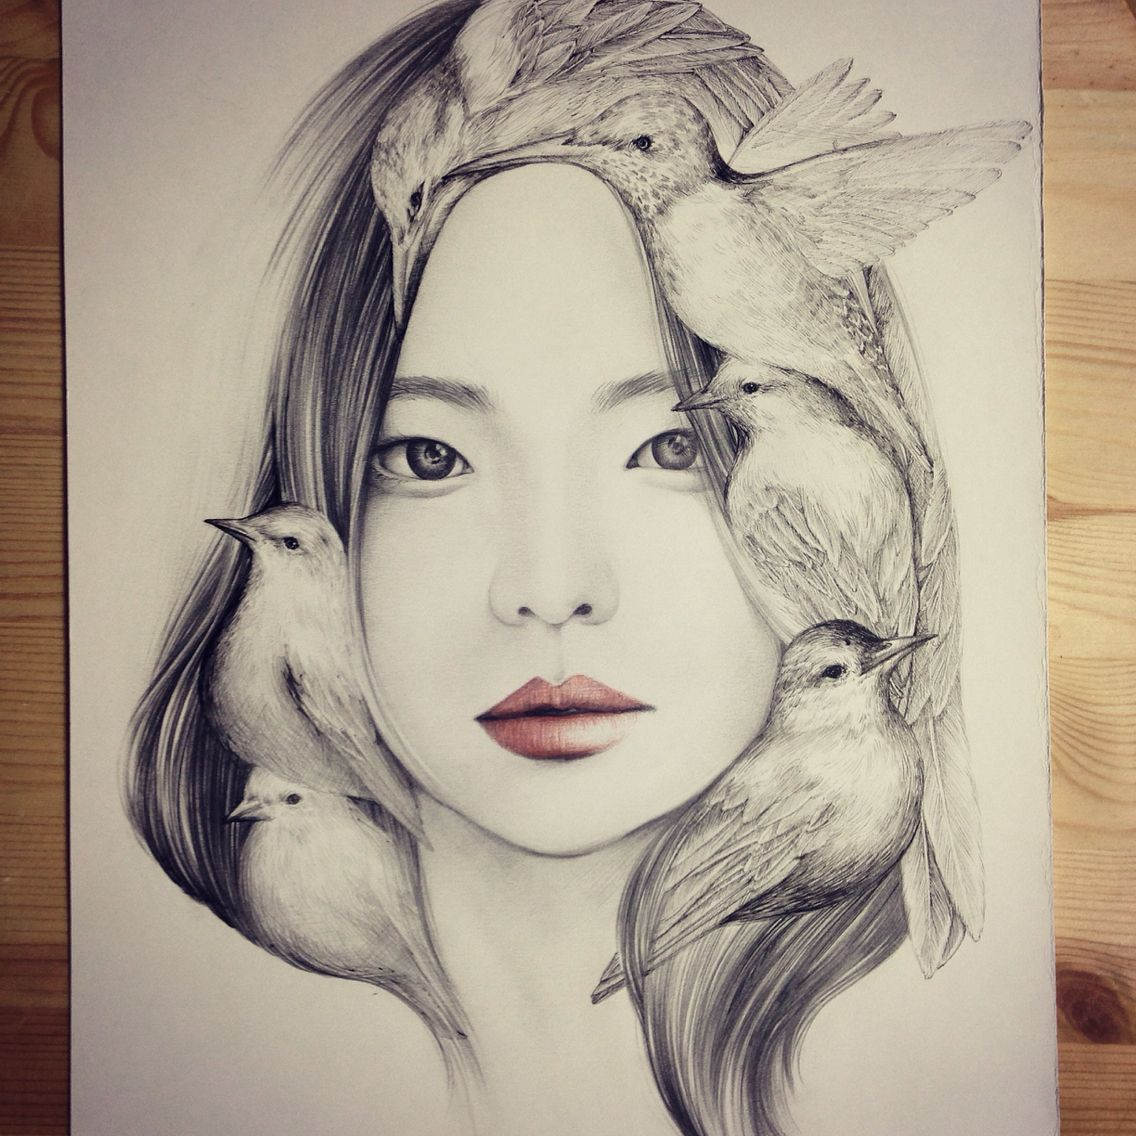 Beautiful Portrait Illustrations The Girl And The Birds By OkArt (+ Process Shots) | Seoul ...